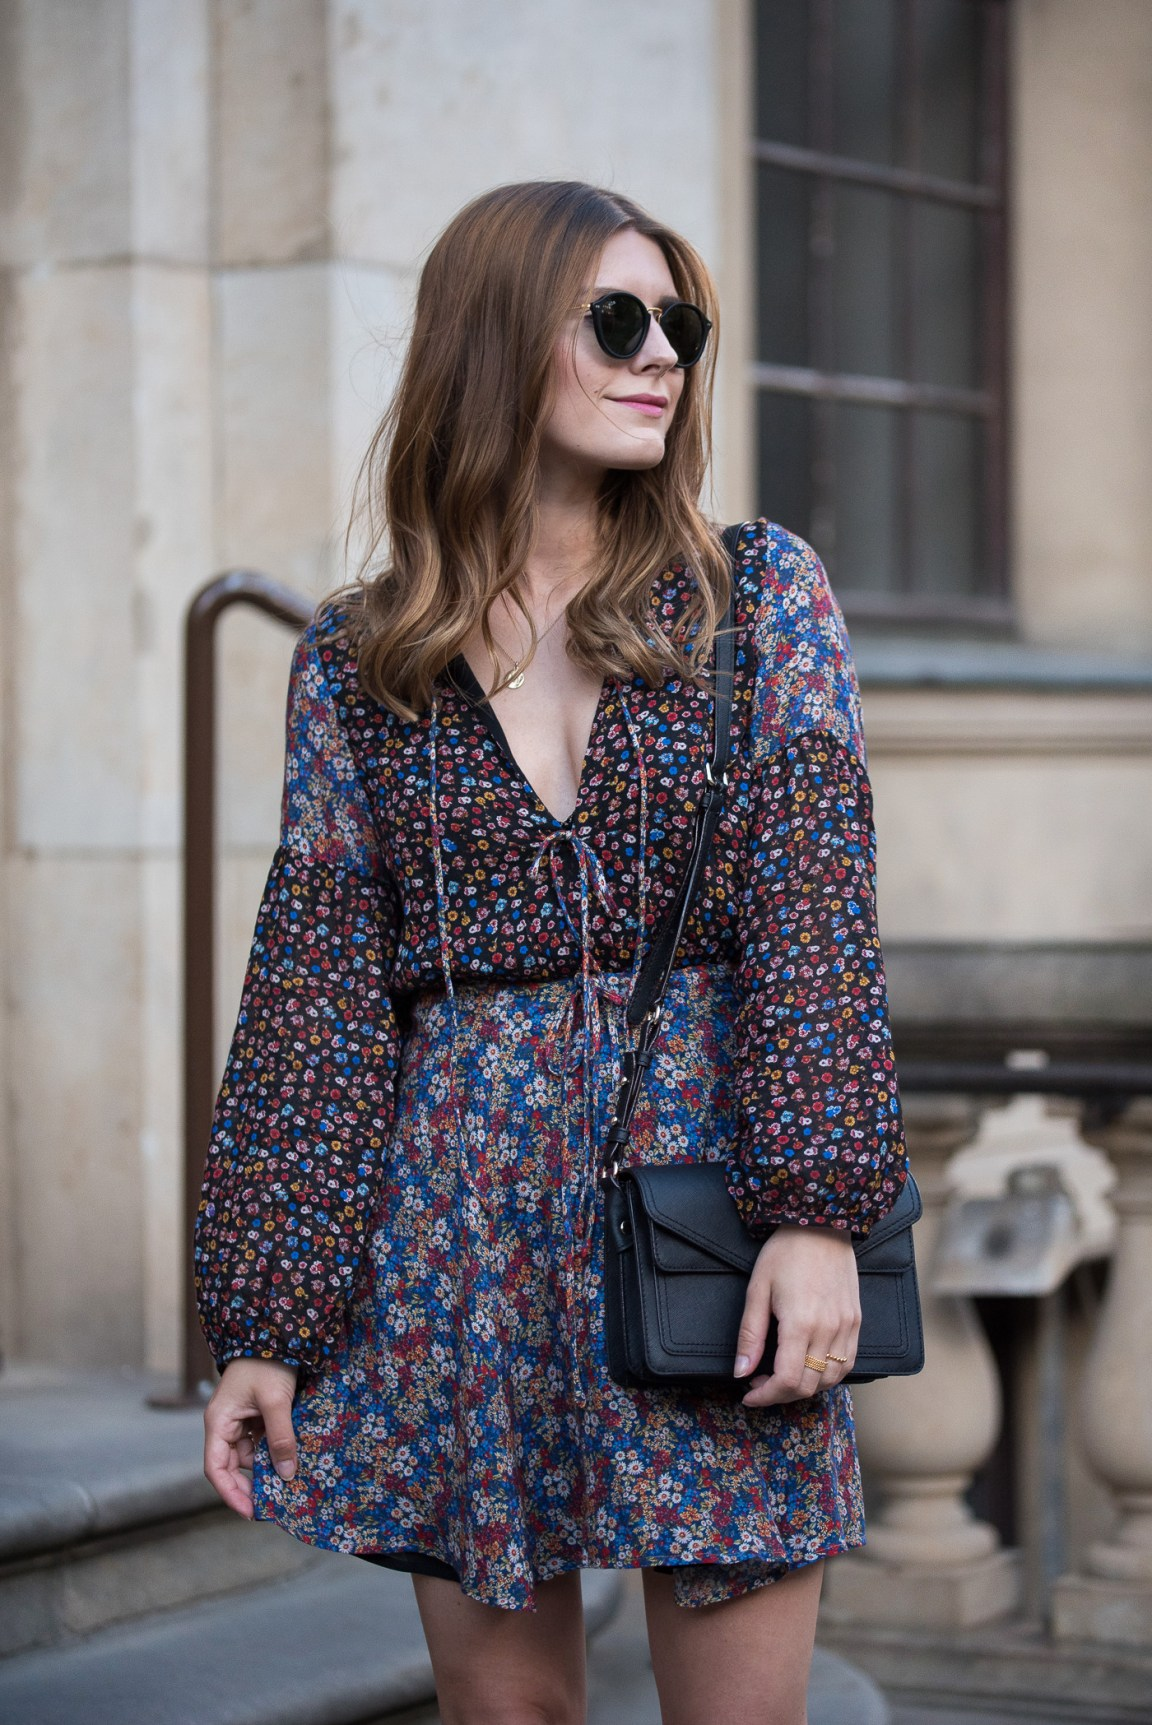 Floral_Summer_Dress_Berlin_Outfit_2